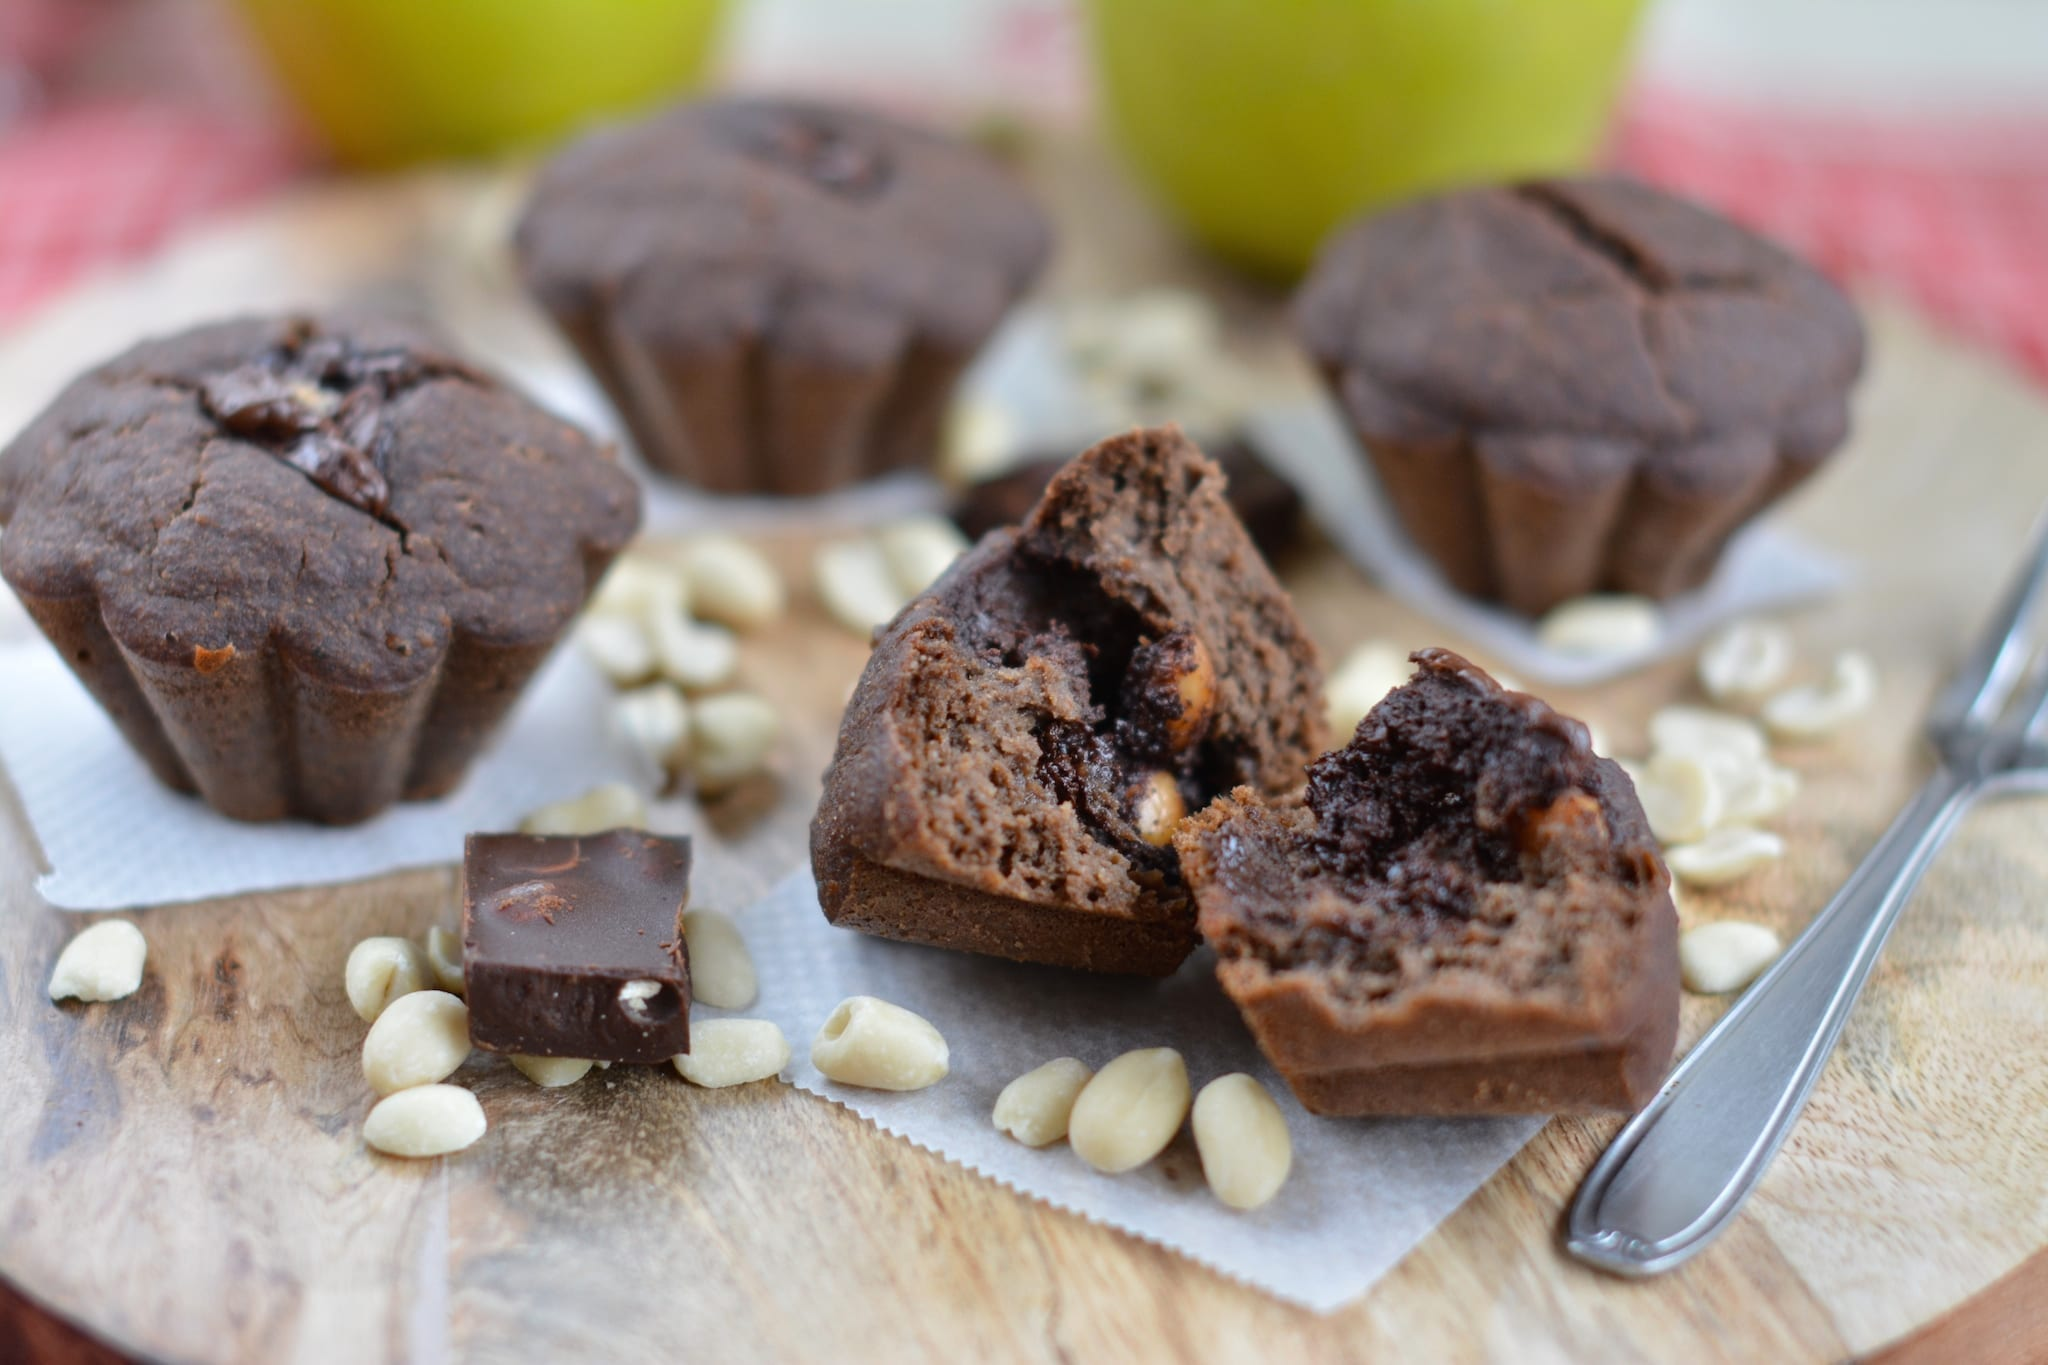 recipe, peanut butter, muffin, plant-based, dessert, sugar-free, oil-free, gluten-free